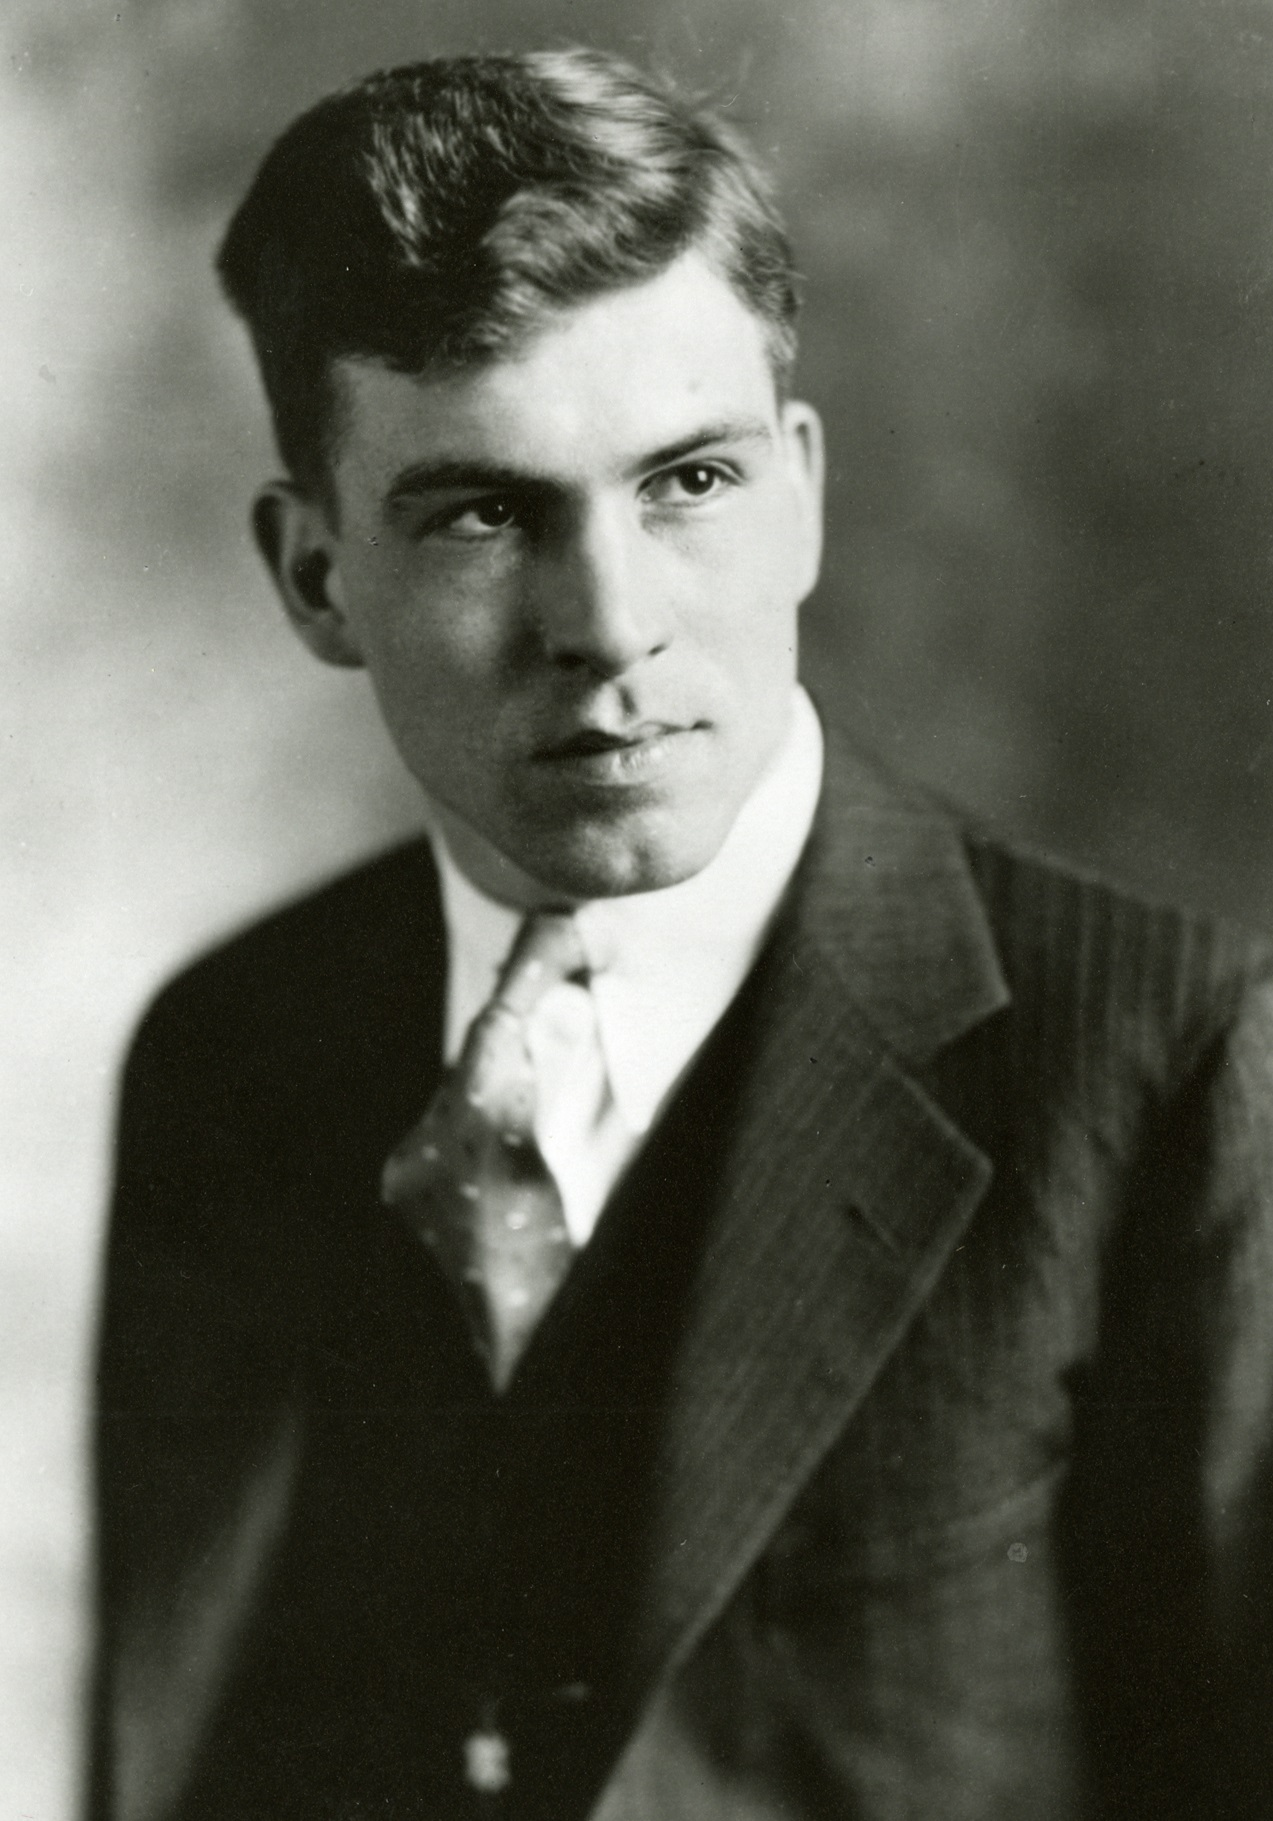 Donald Othmer as a young man.